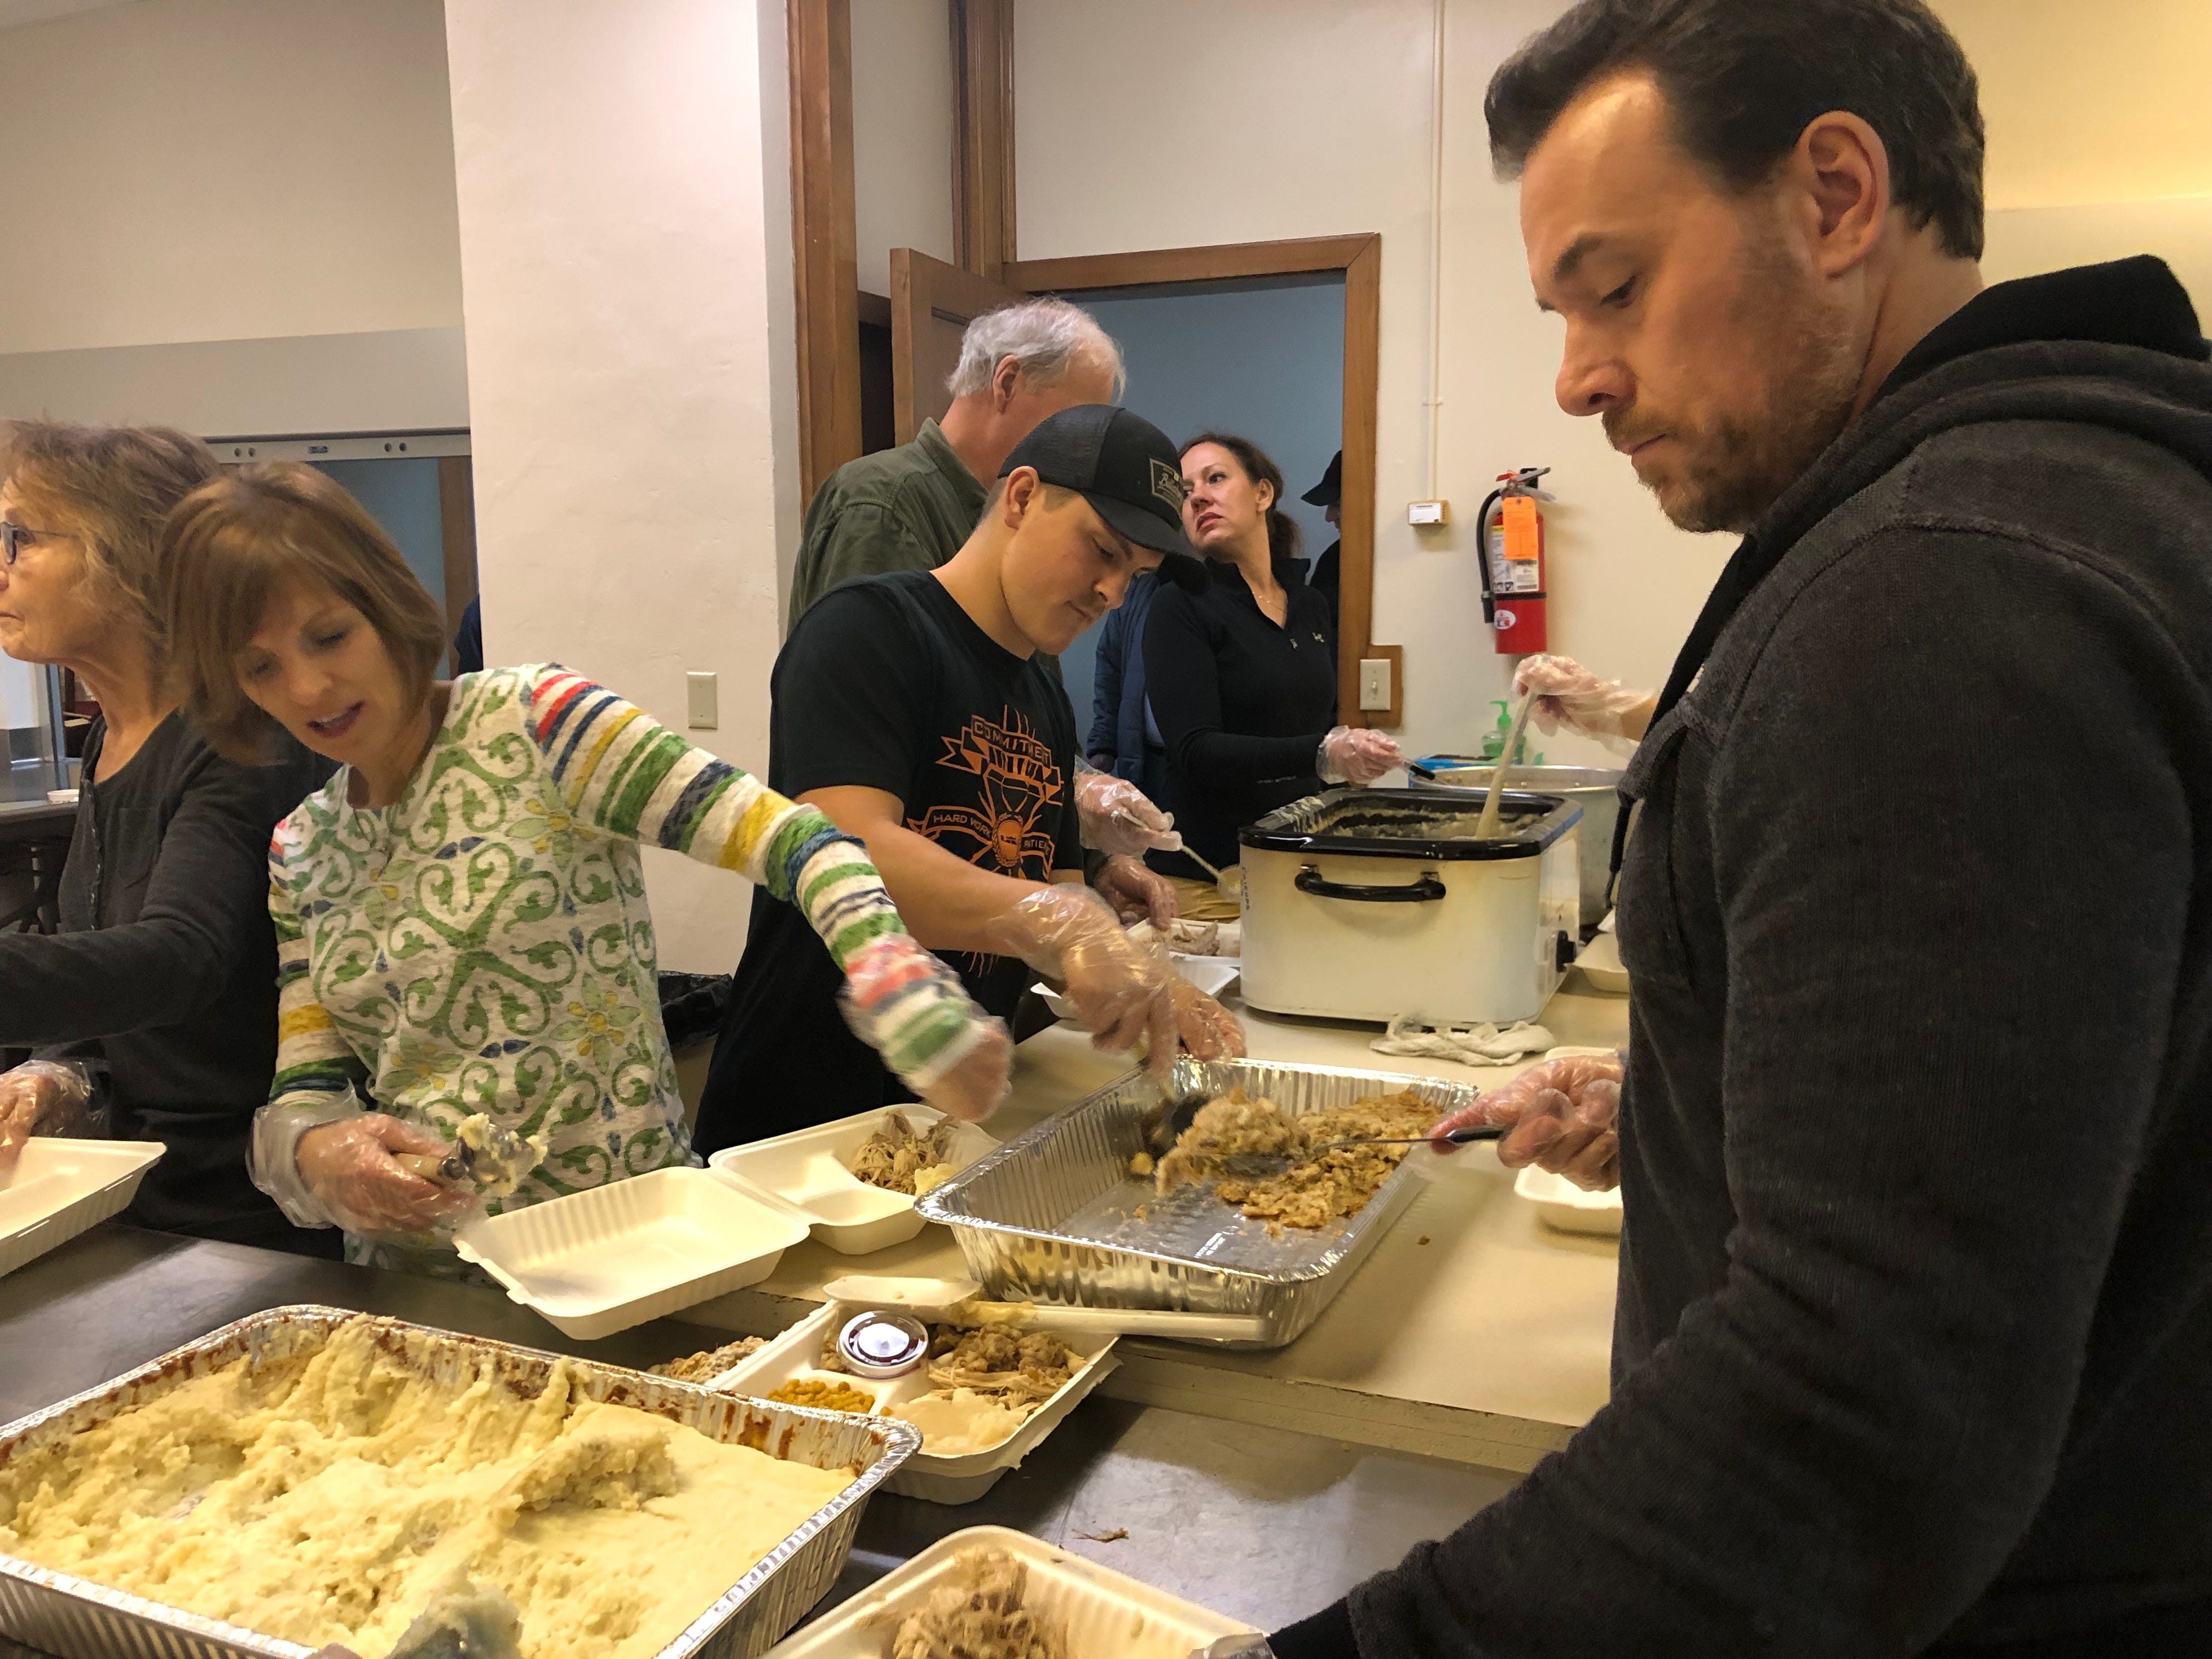 Volunteers scoop out Thanksgivng foods at First Presbyterian Church on Nov. 22.